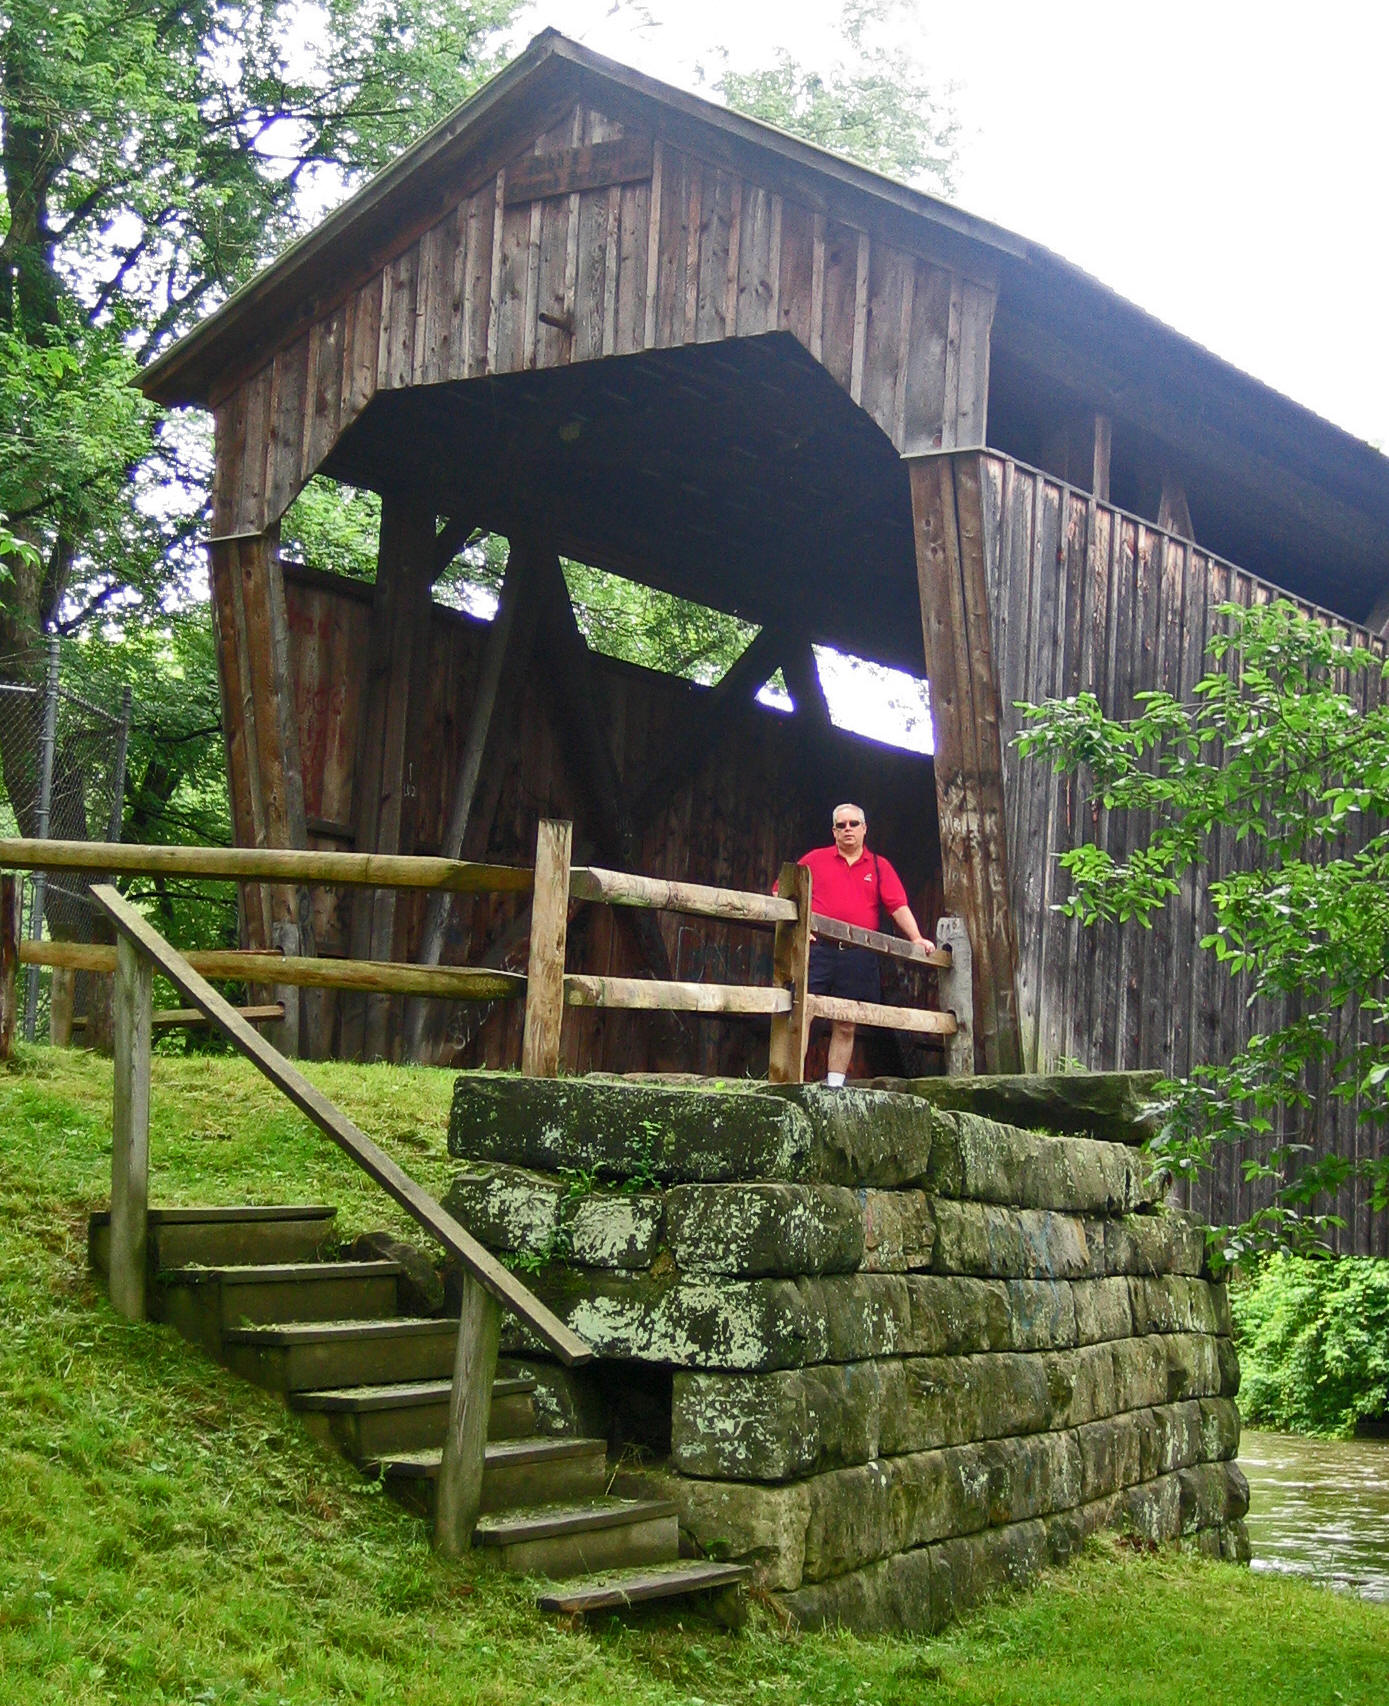 Greg at Covered bridge